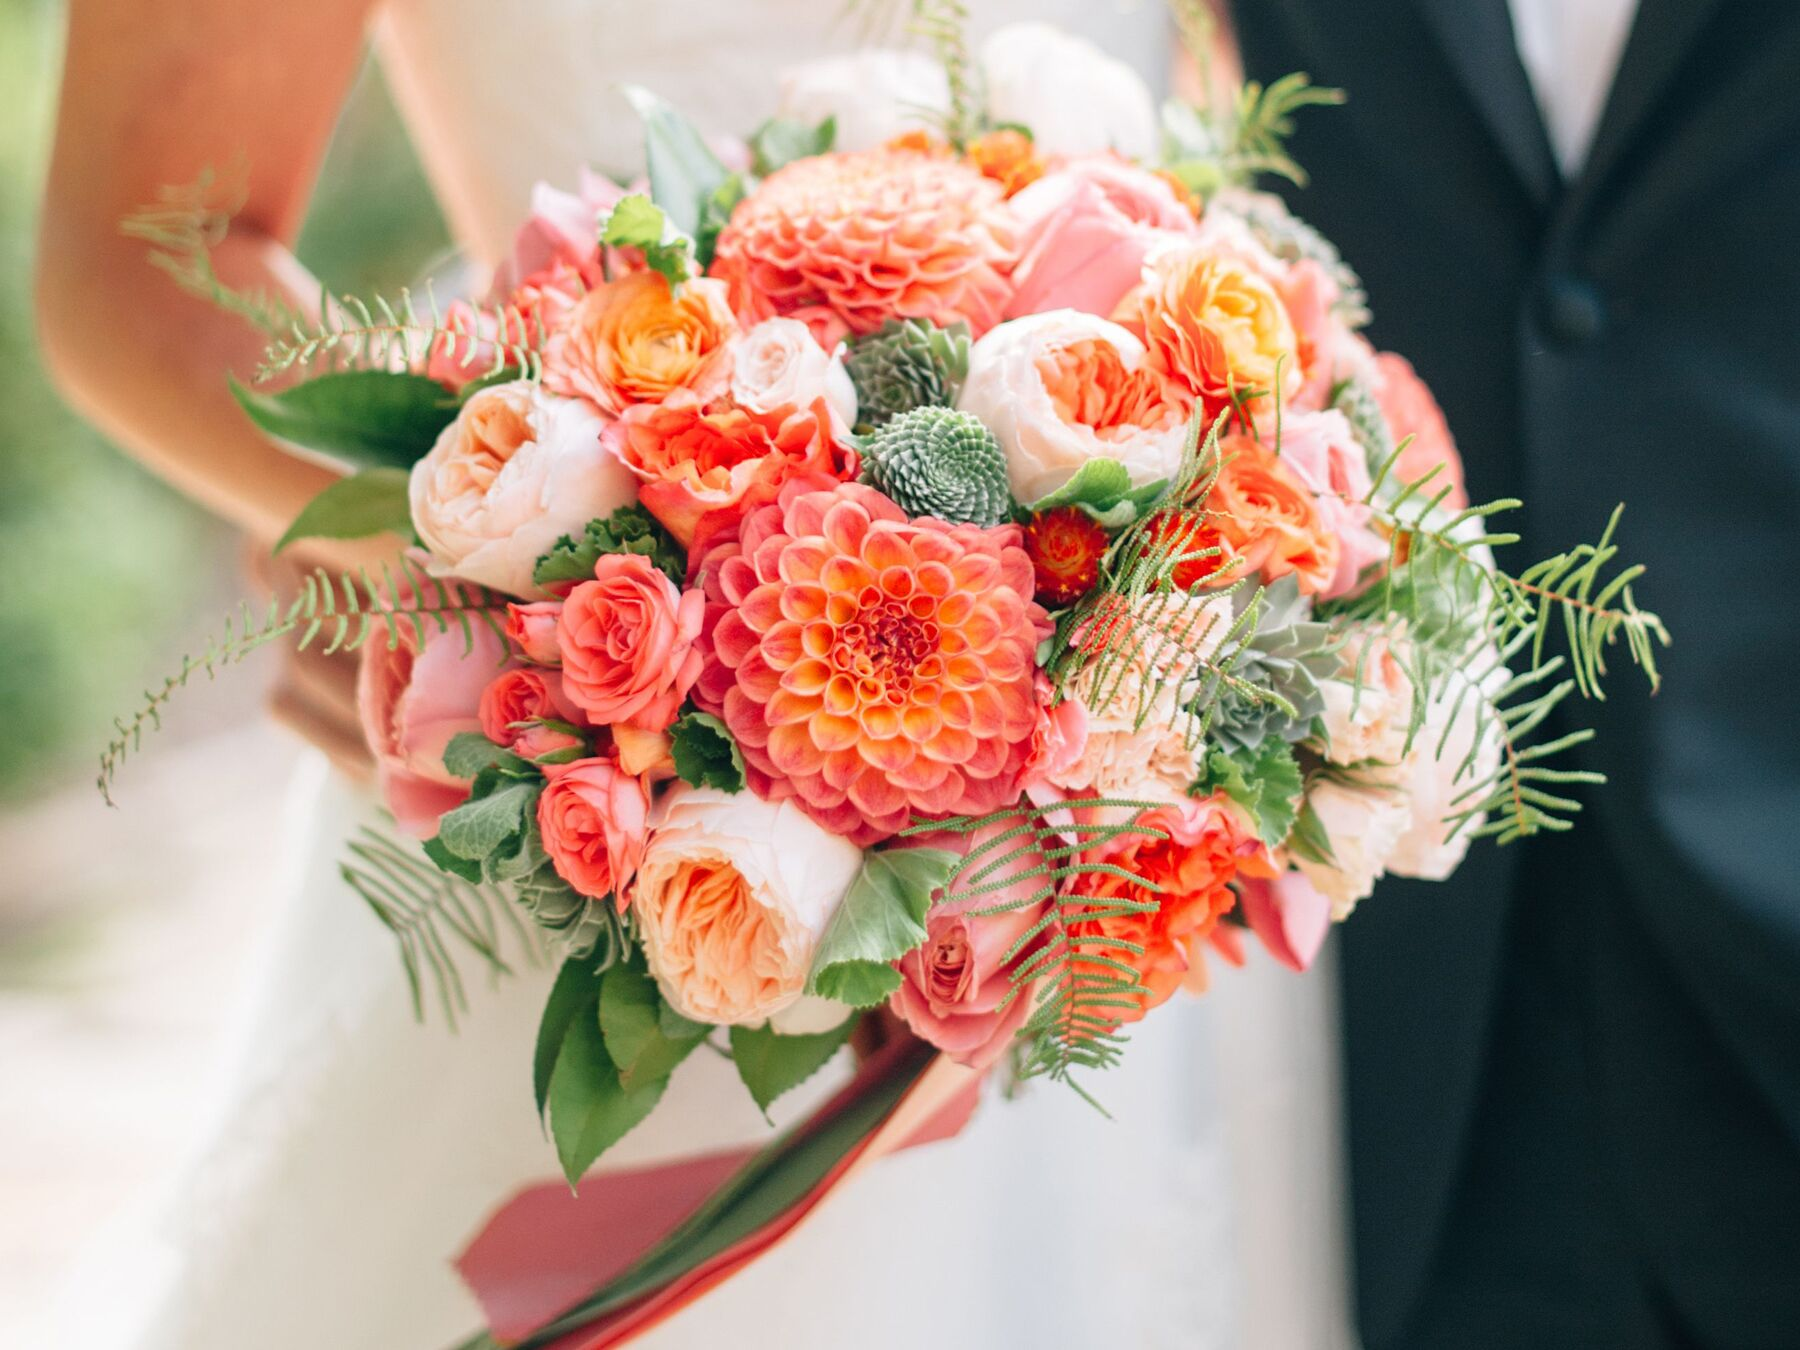 ideas for you to choose orange narcissus wedding flowers 4 - Ideas for You to Choose Orange Narcissus Wedding Flowers